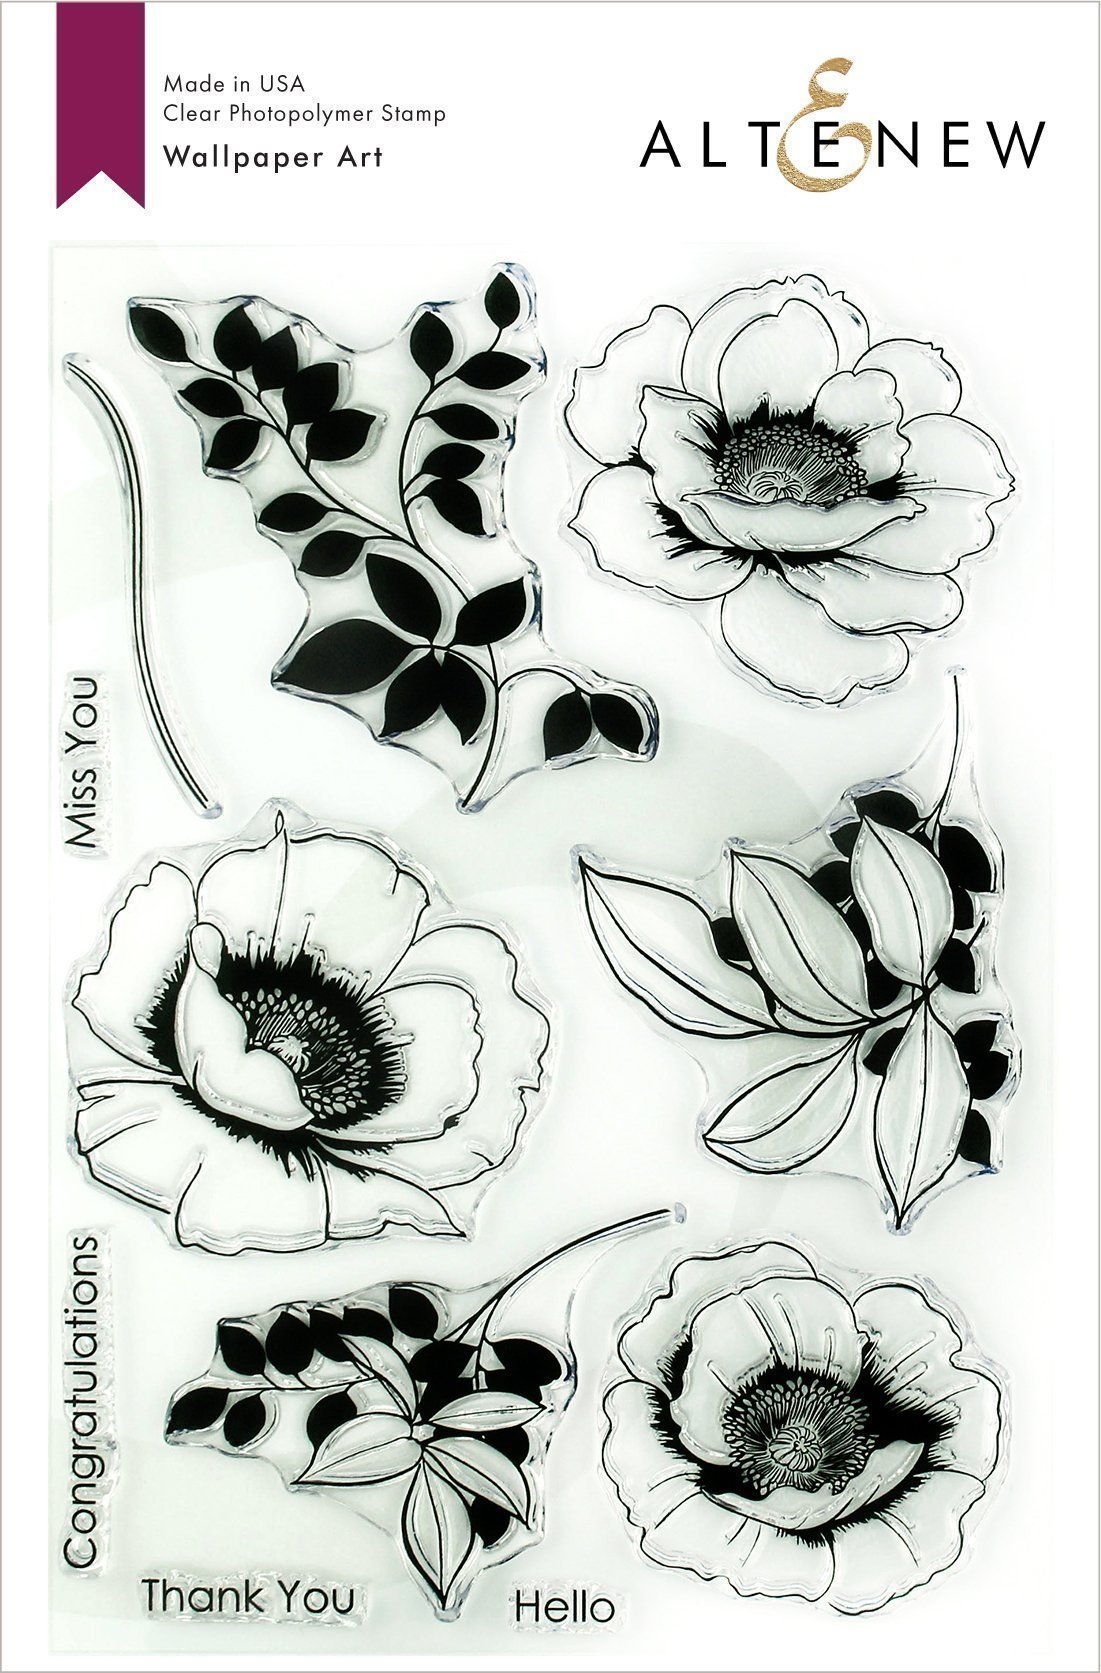 *NEW* - Altenew - Wallpaper Art Stamp Set